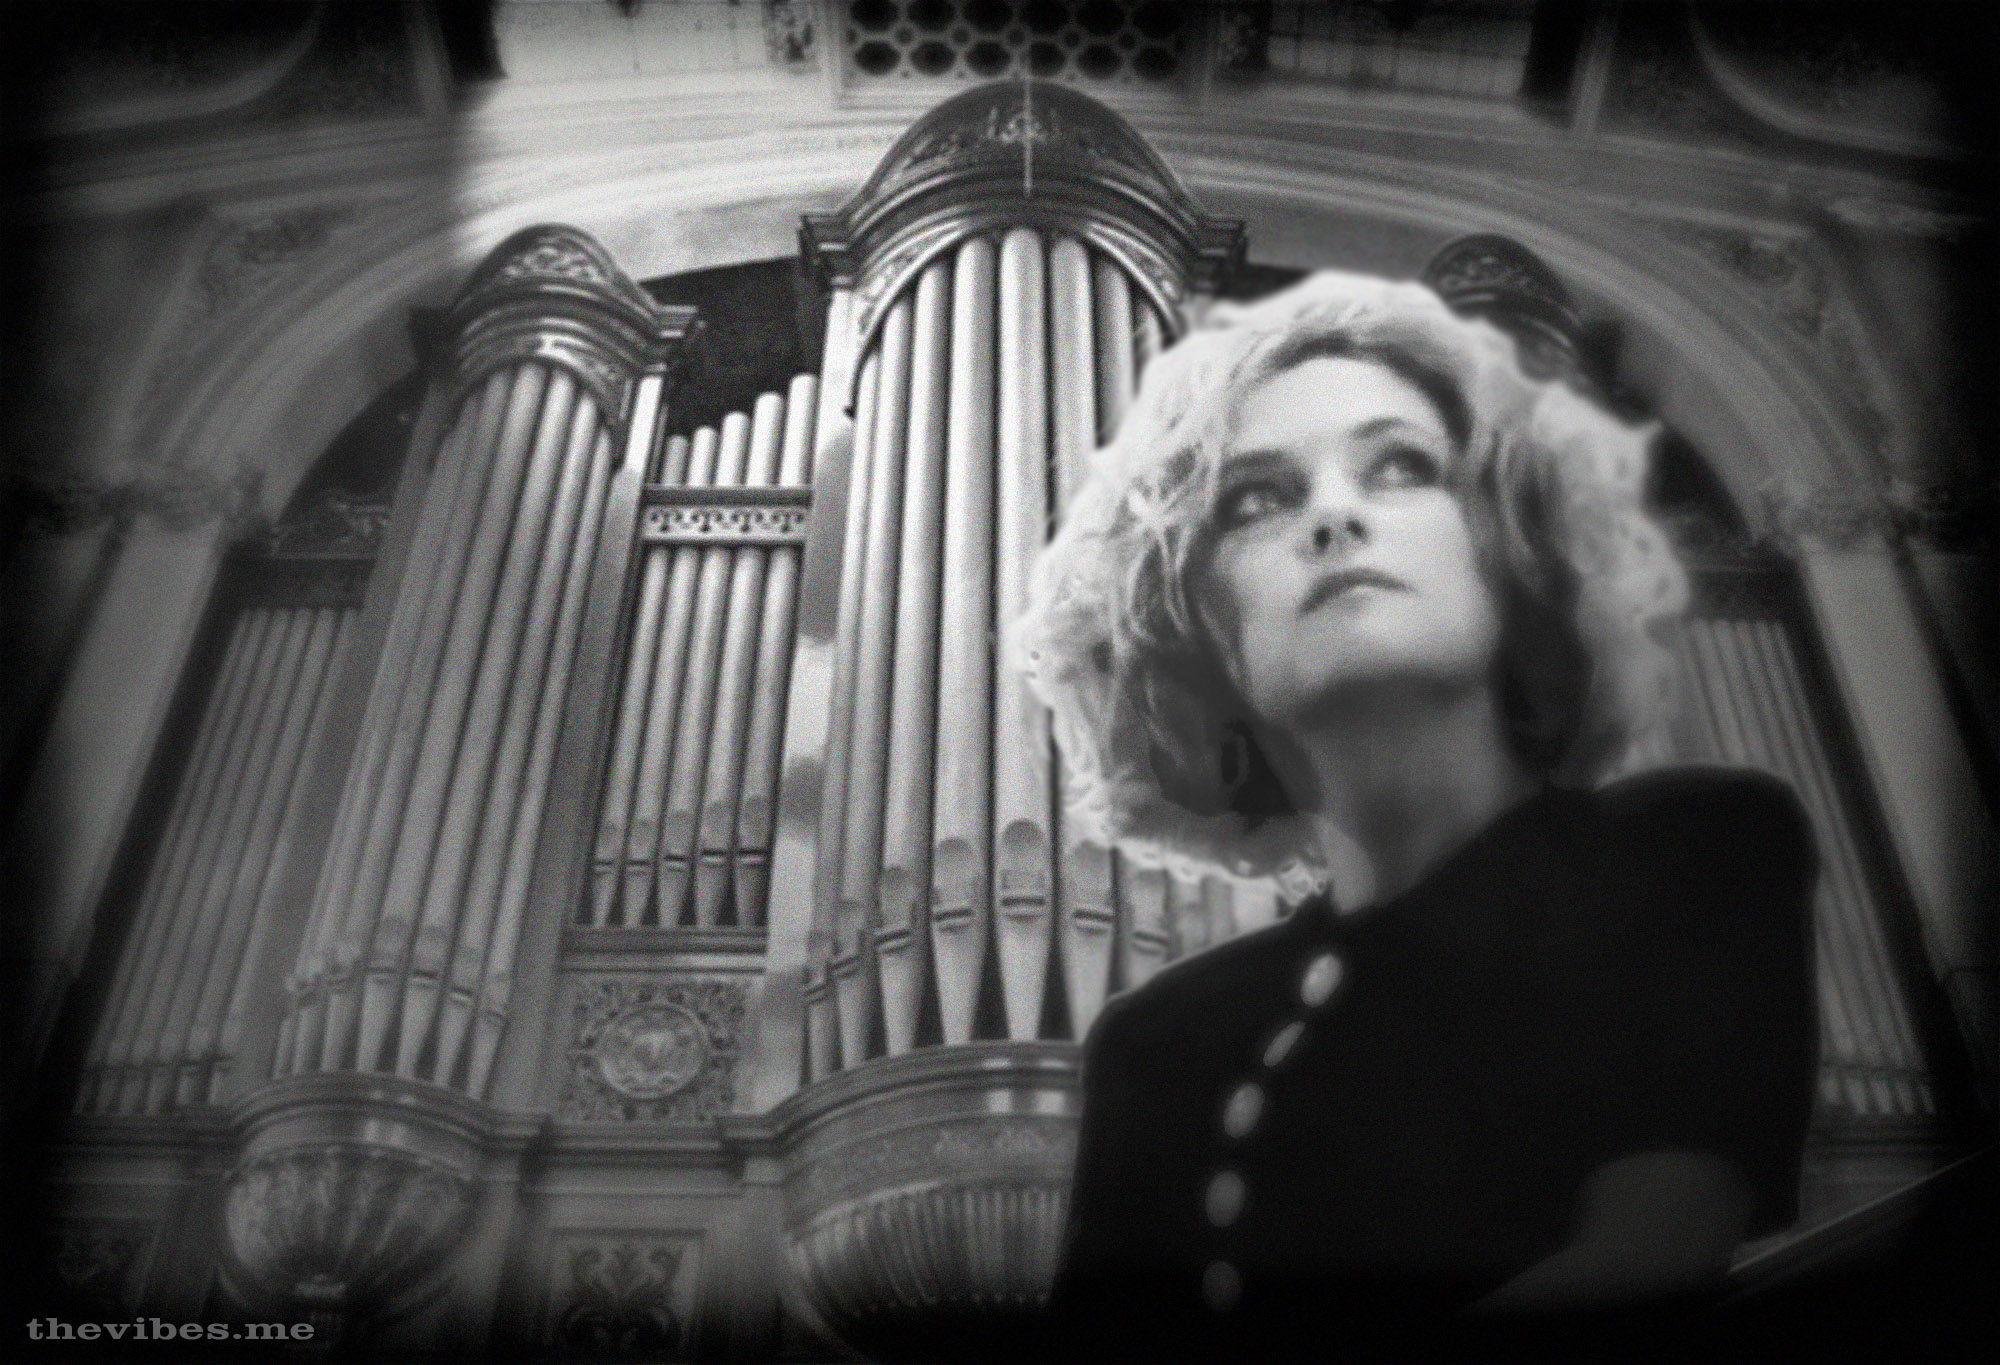 Goldfrapp  new album debut live at The Albert Hall  the